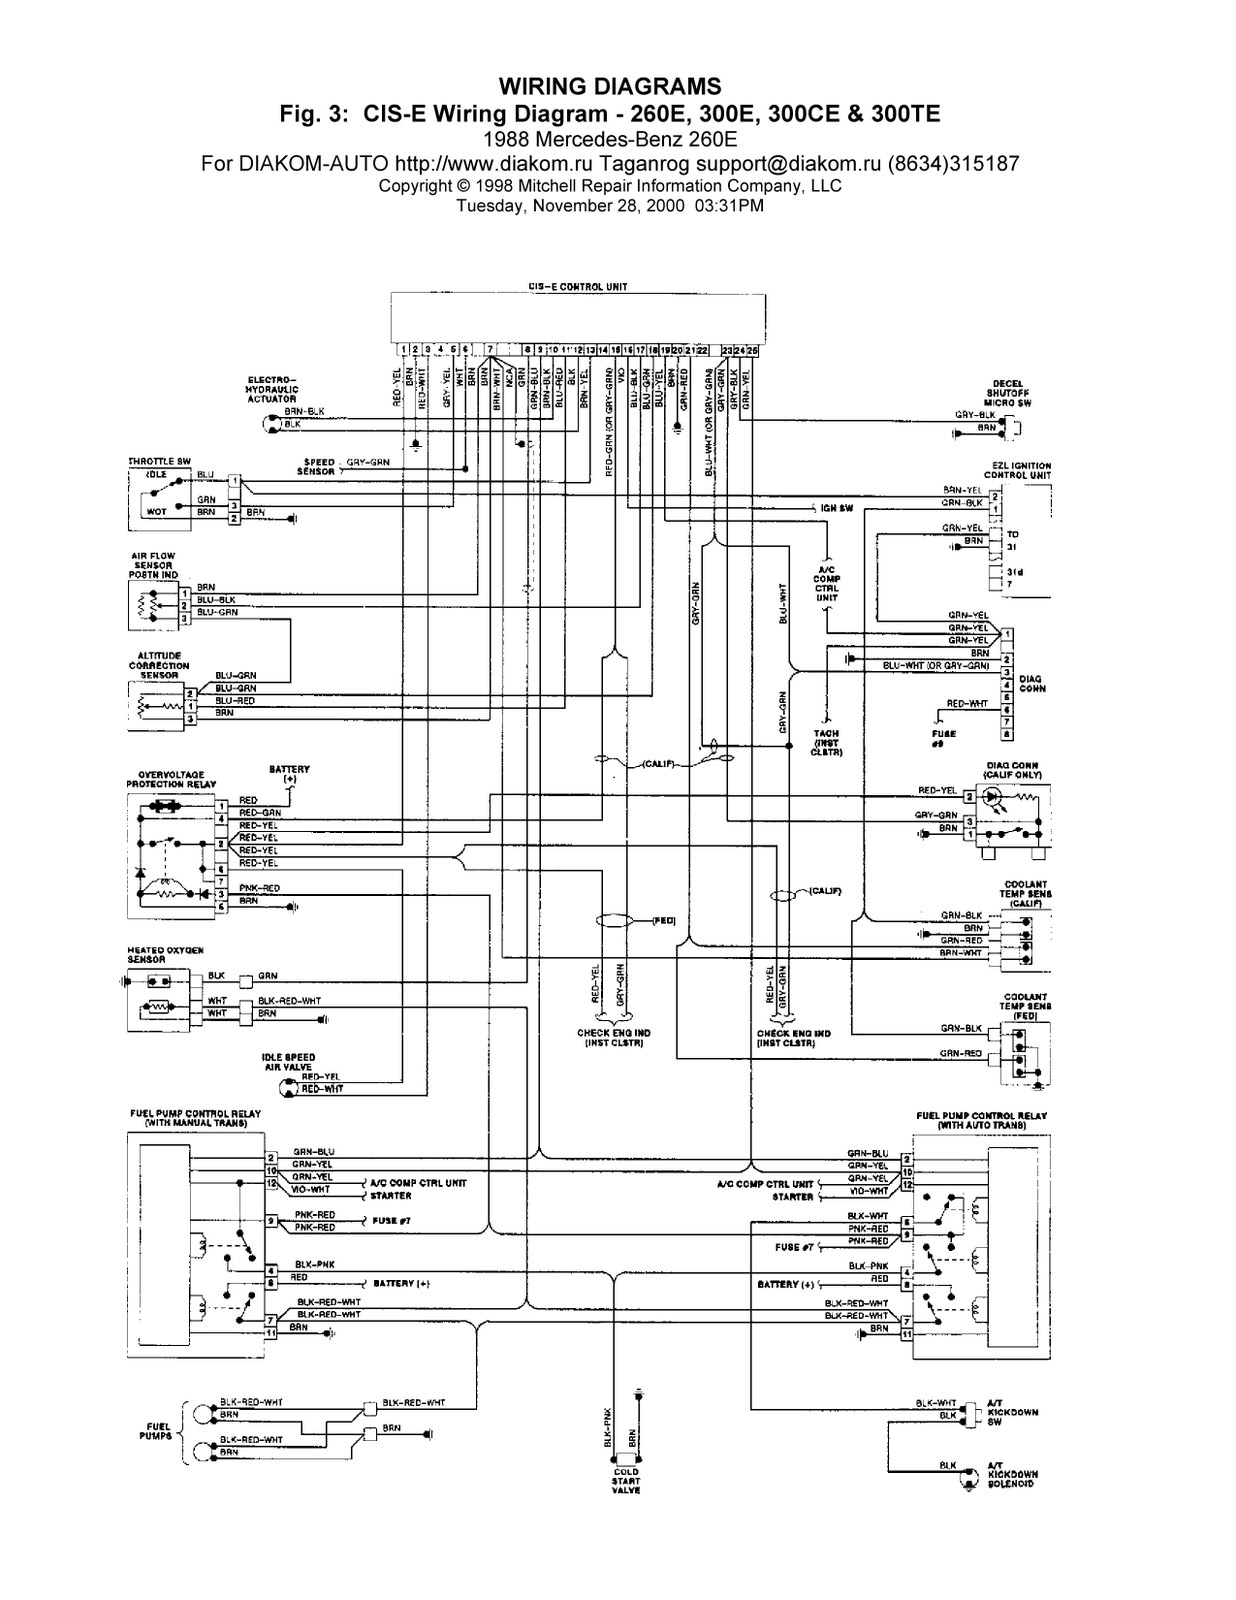 Mercedes Benz Engine Wiring Diagram : Mercedes r wiring diagram